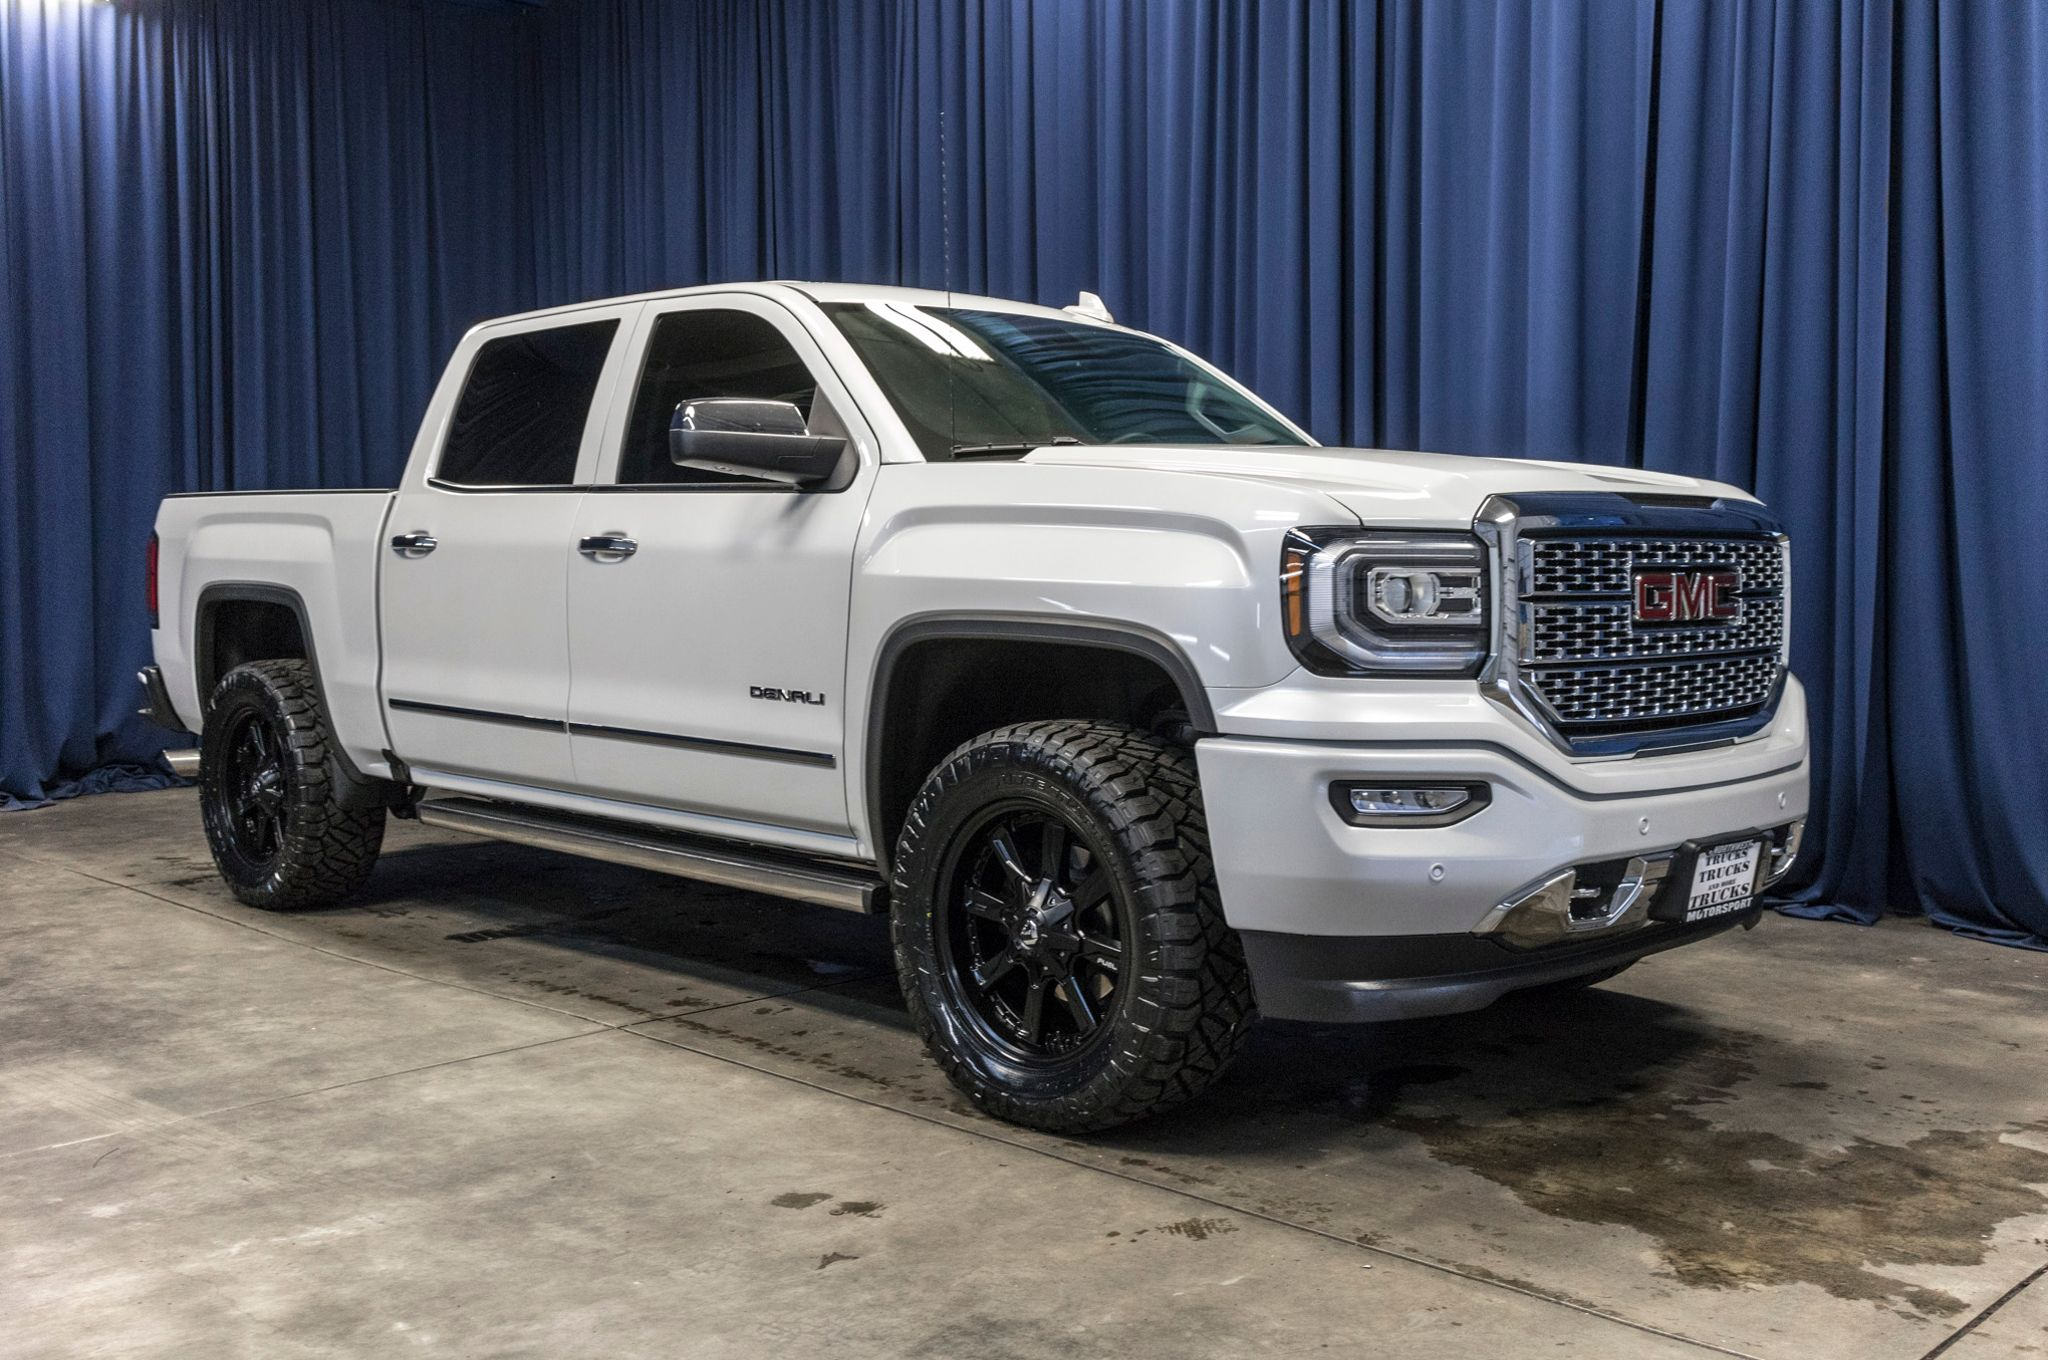 Used Lifted 2017 GMC Sierra 1500 Denali 4x4 Truck For Sale ...